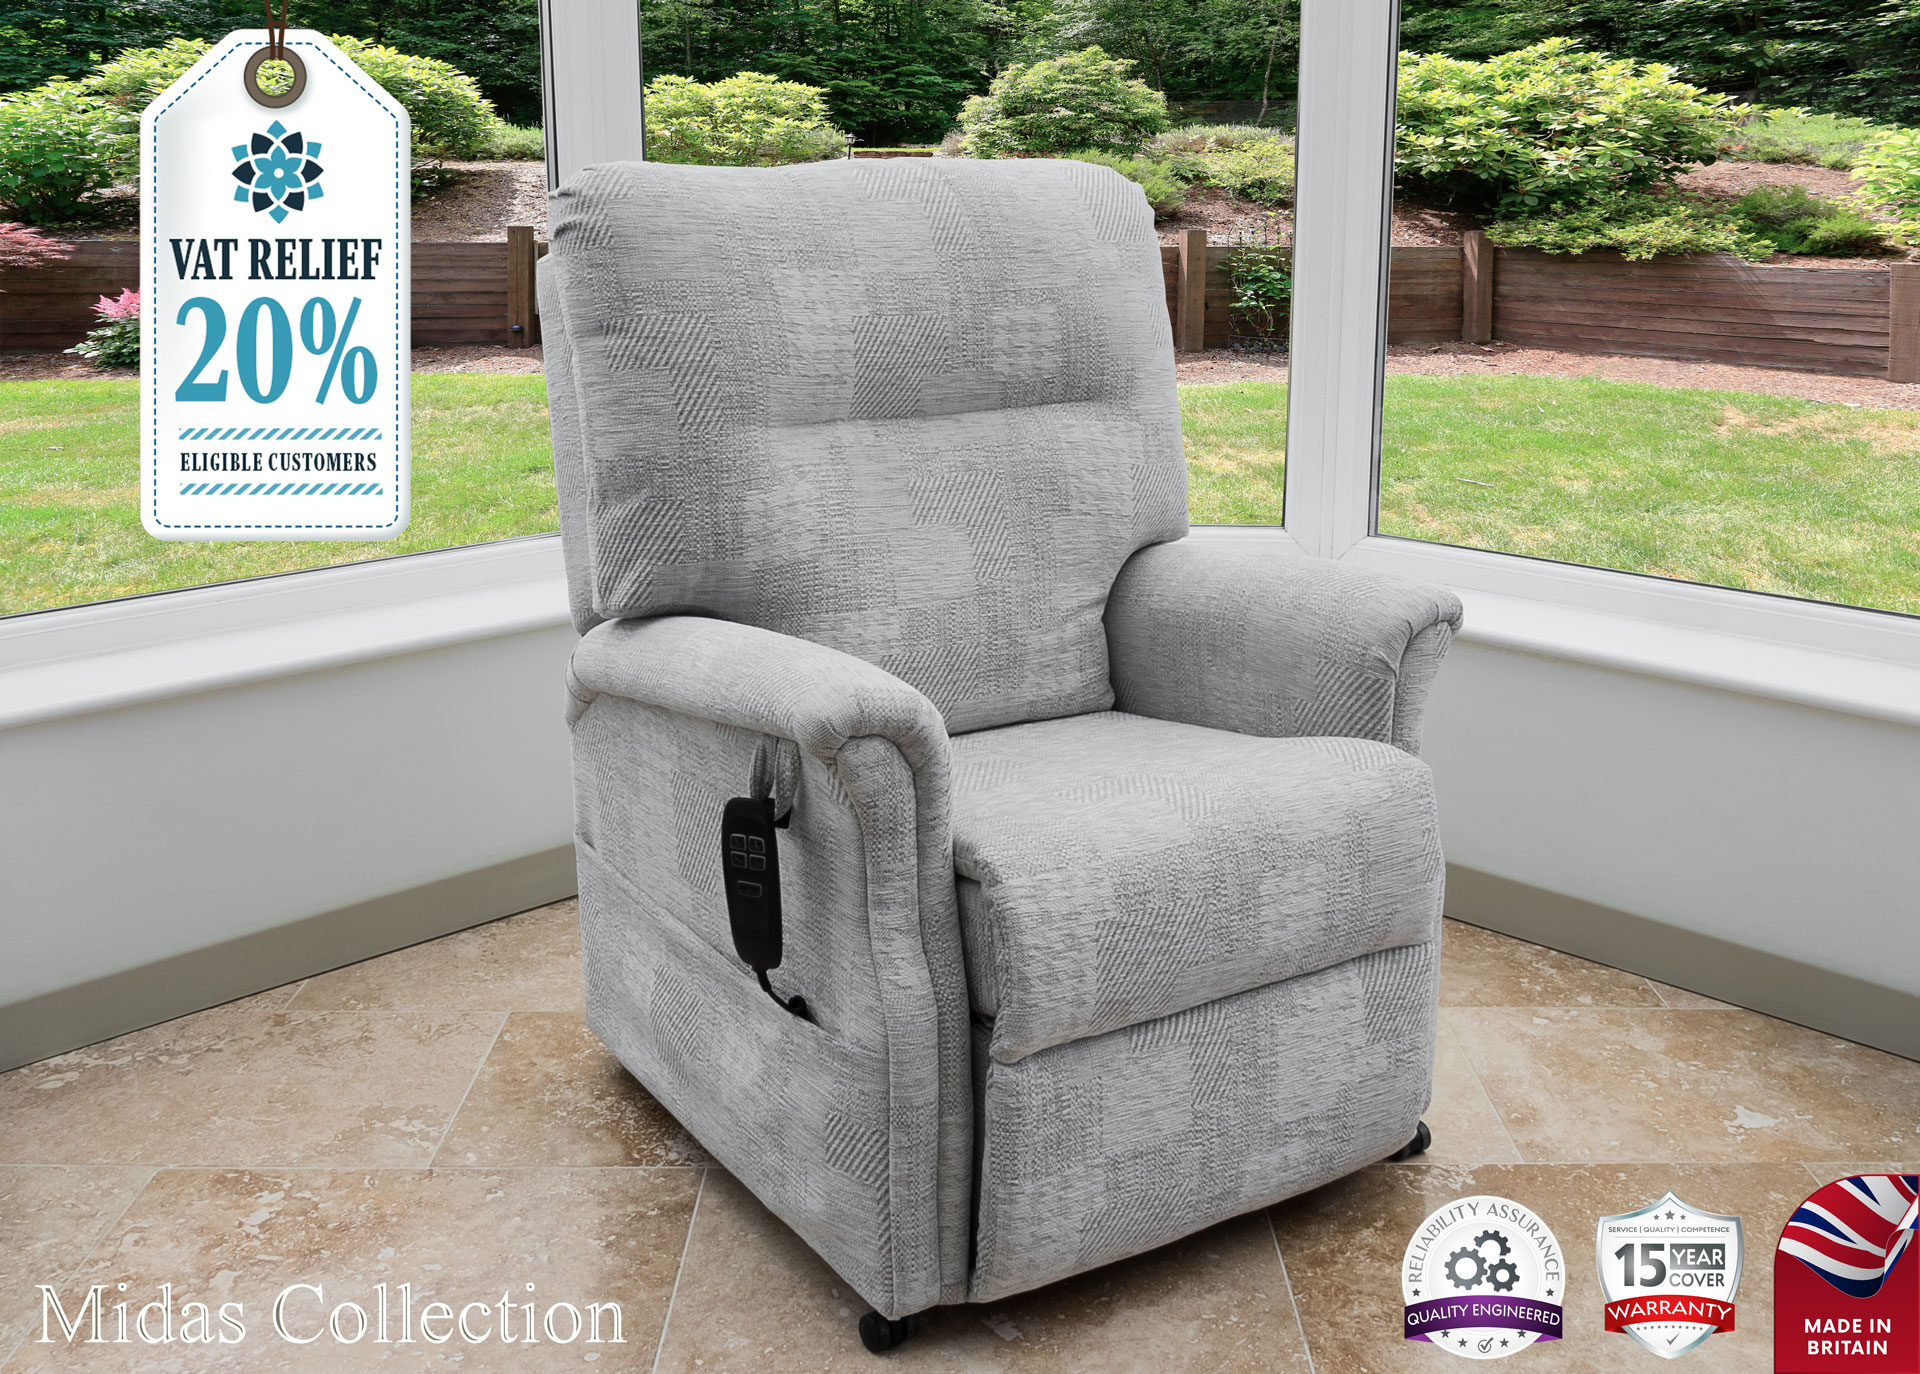 Athena Mobility | Midas Chair Collection